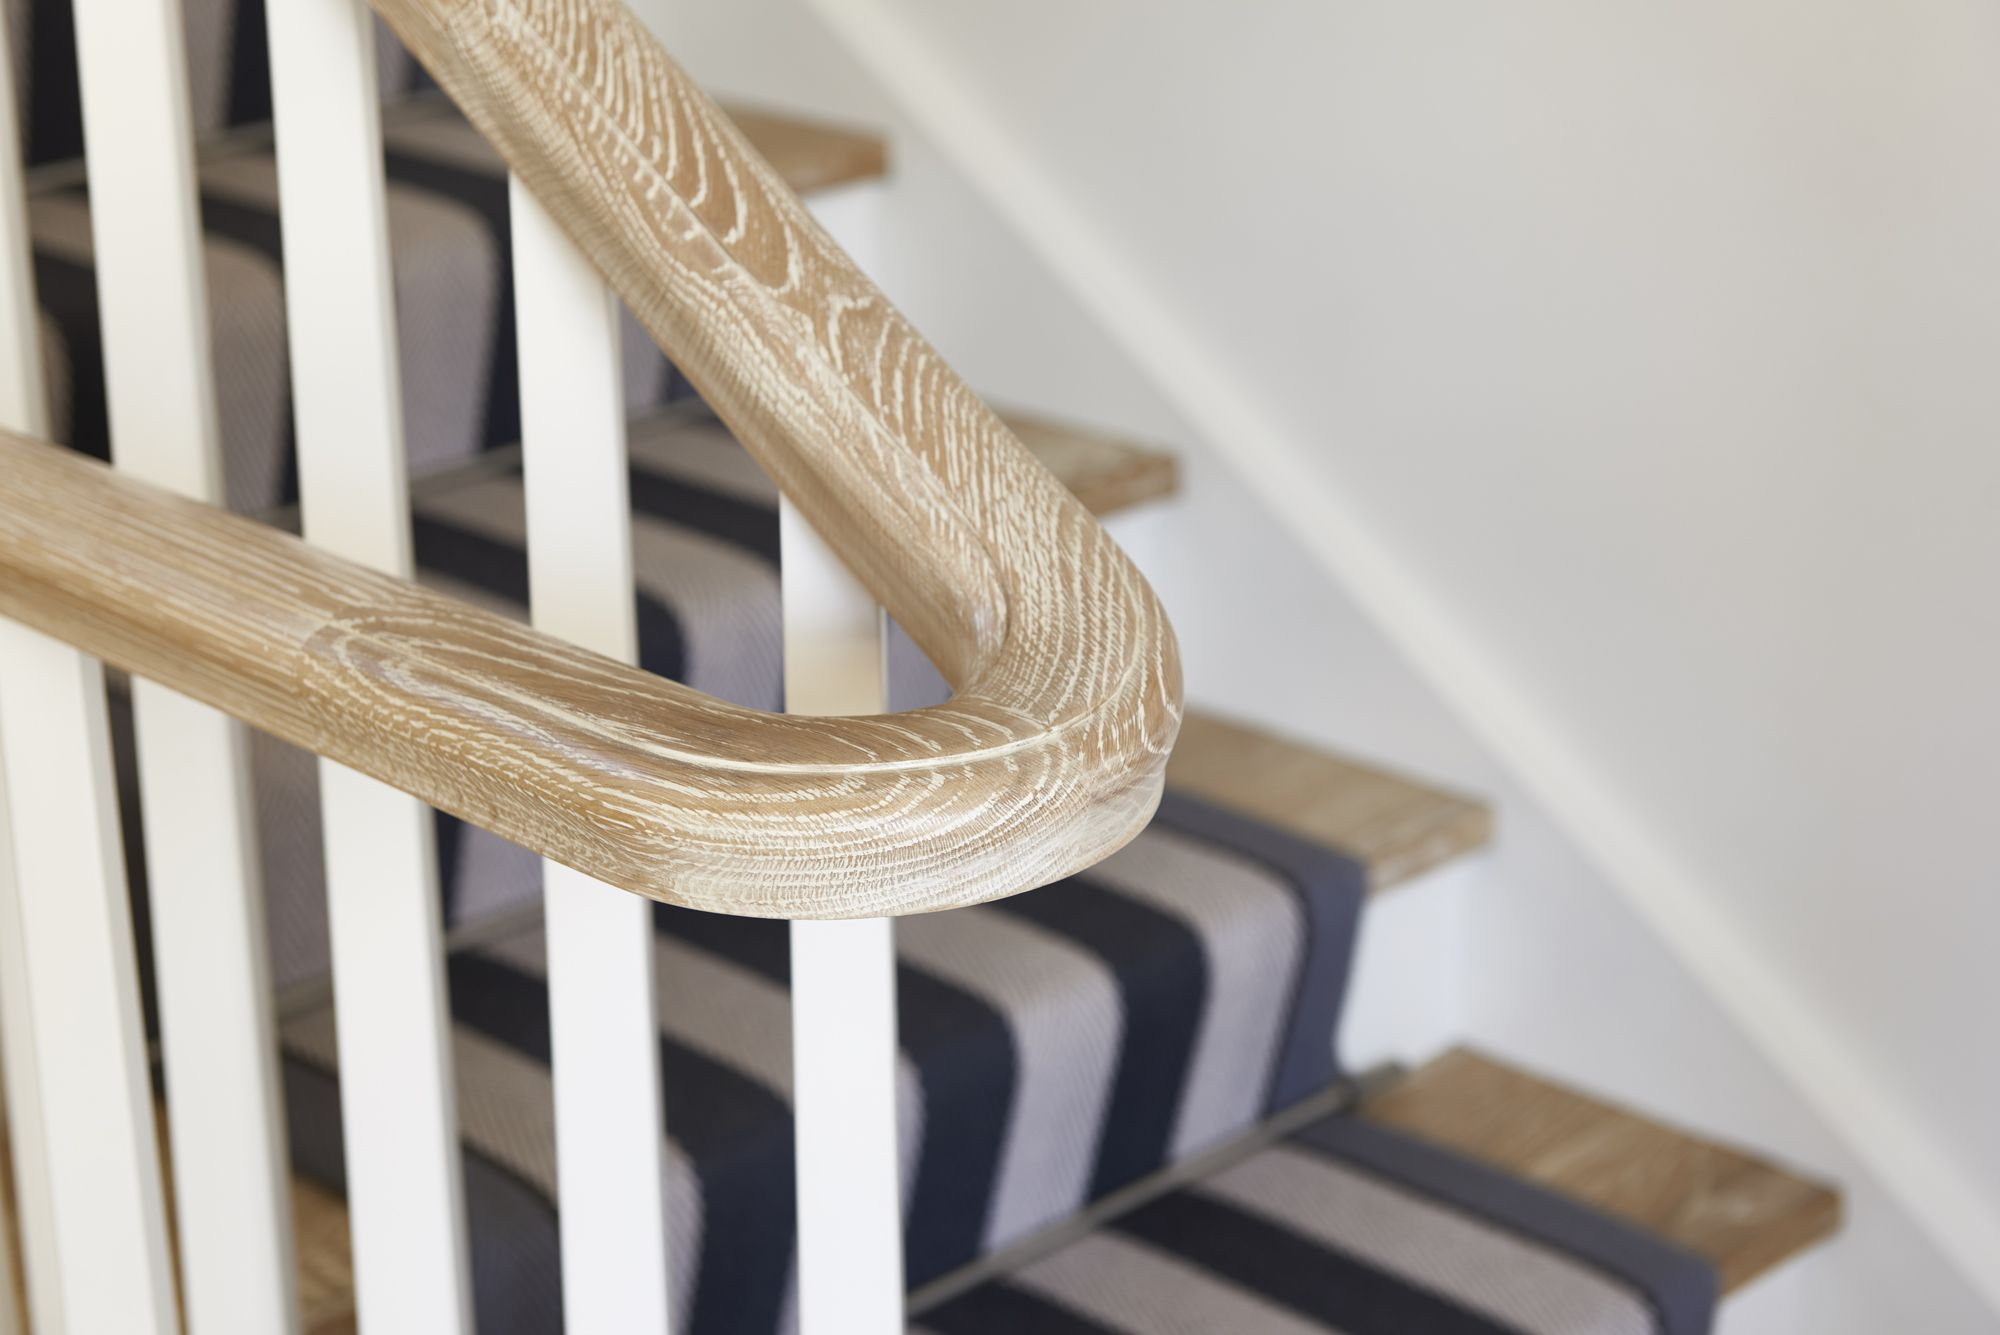 Stairs - Traditional Staircase - American Oak - Painted Timber